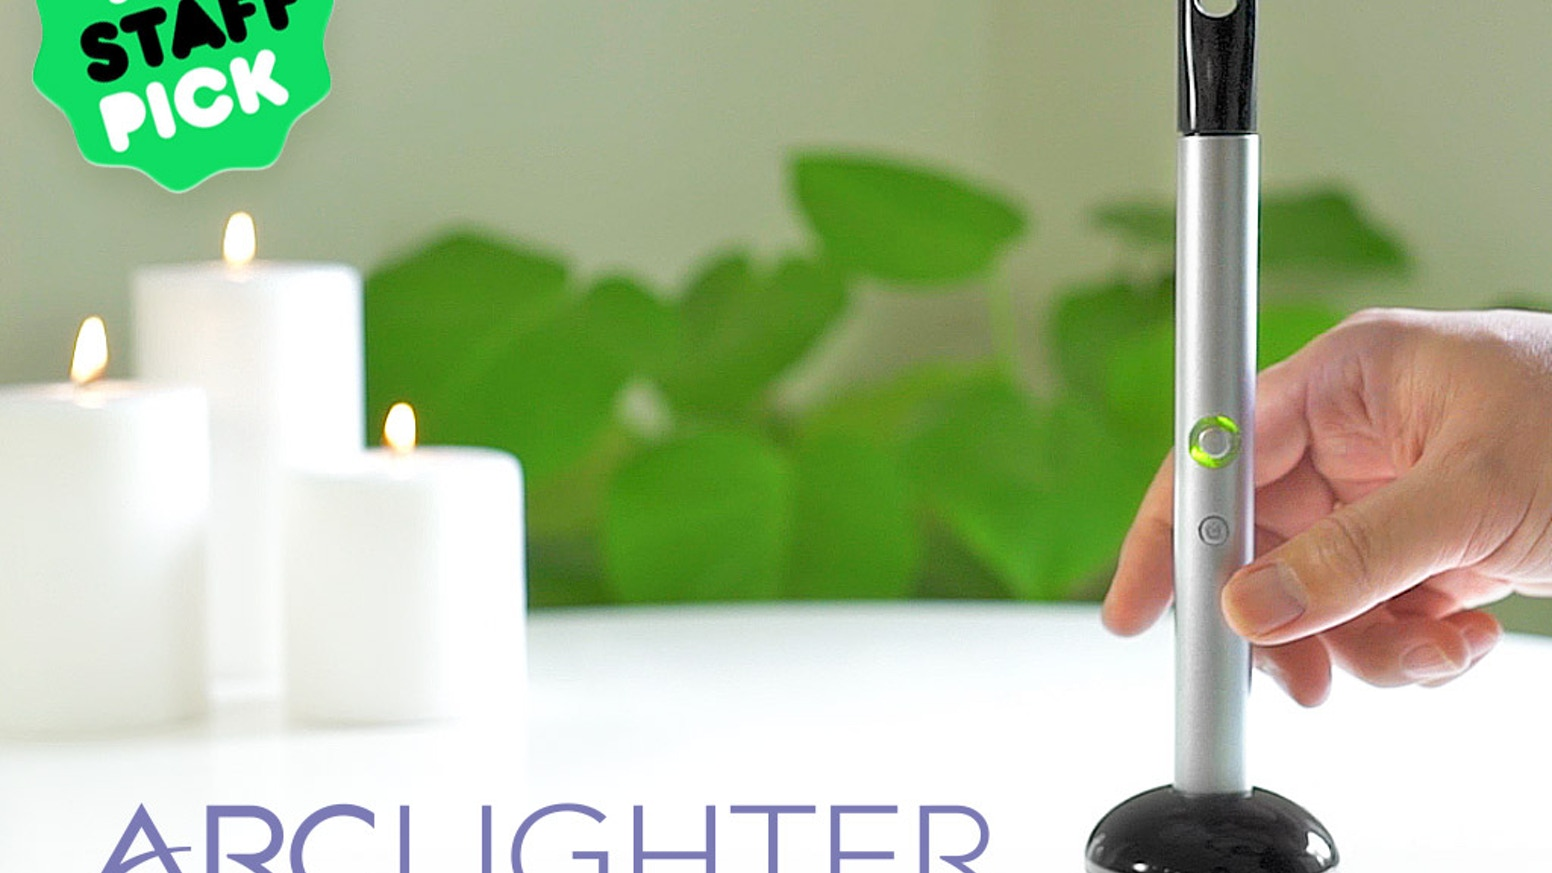 Introducing the world's first flameless, electronic, rechargeable candle lighter powered by our patent pending ArcLighter Technology.